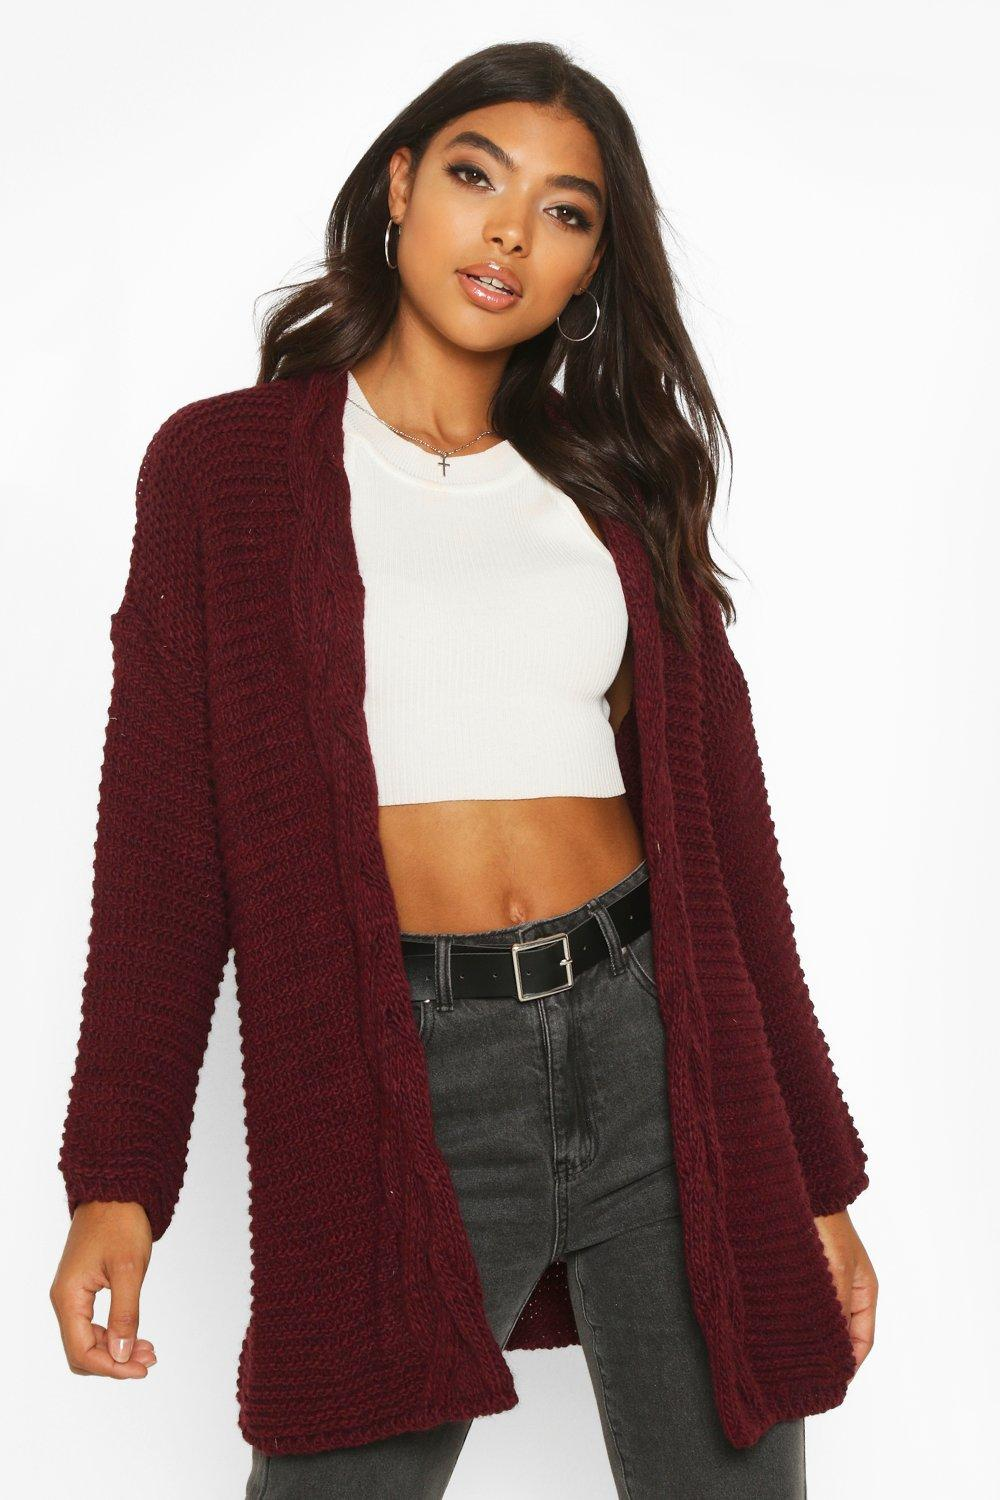 Womens Tall Cardigan mit gdressing gownm Zopfmuster - beerenrot - S/M, Beerenrot - Boohoo.com